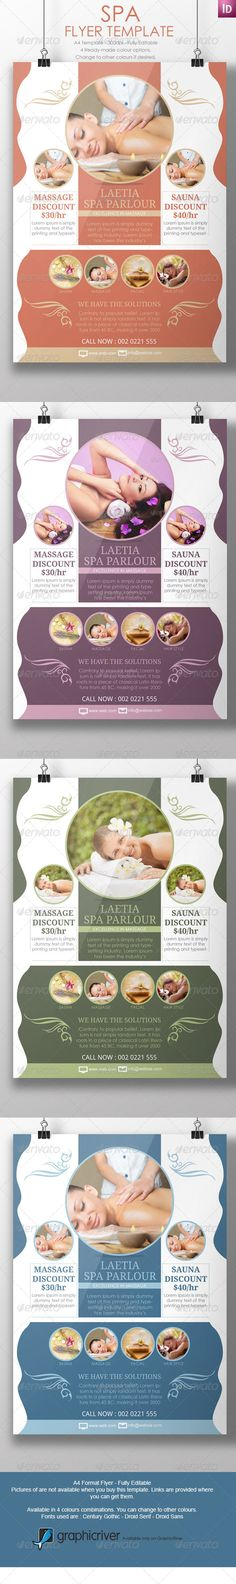 Spa Flyer Template - Corporate Flyers